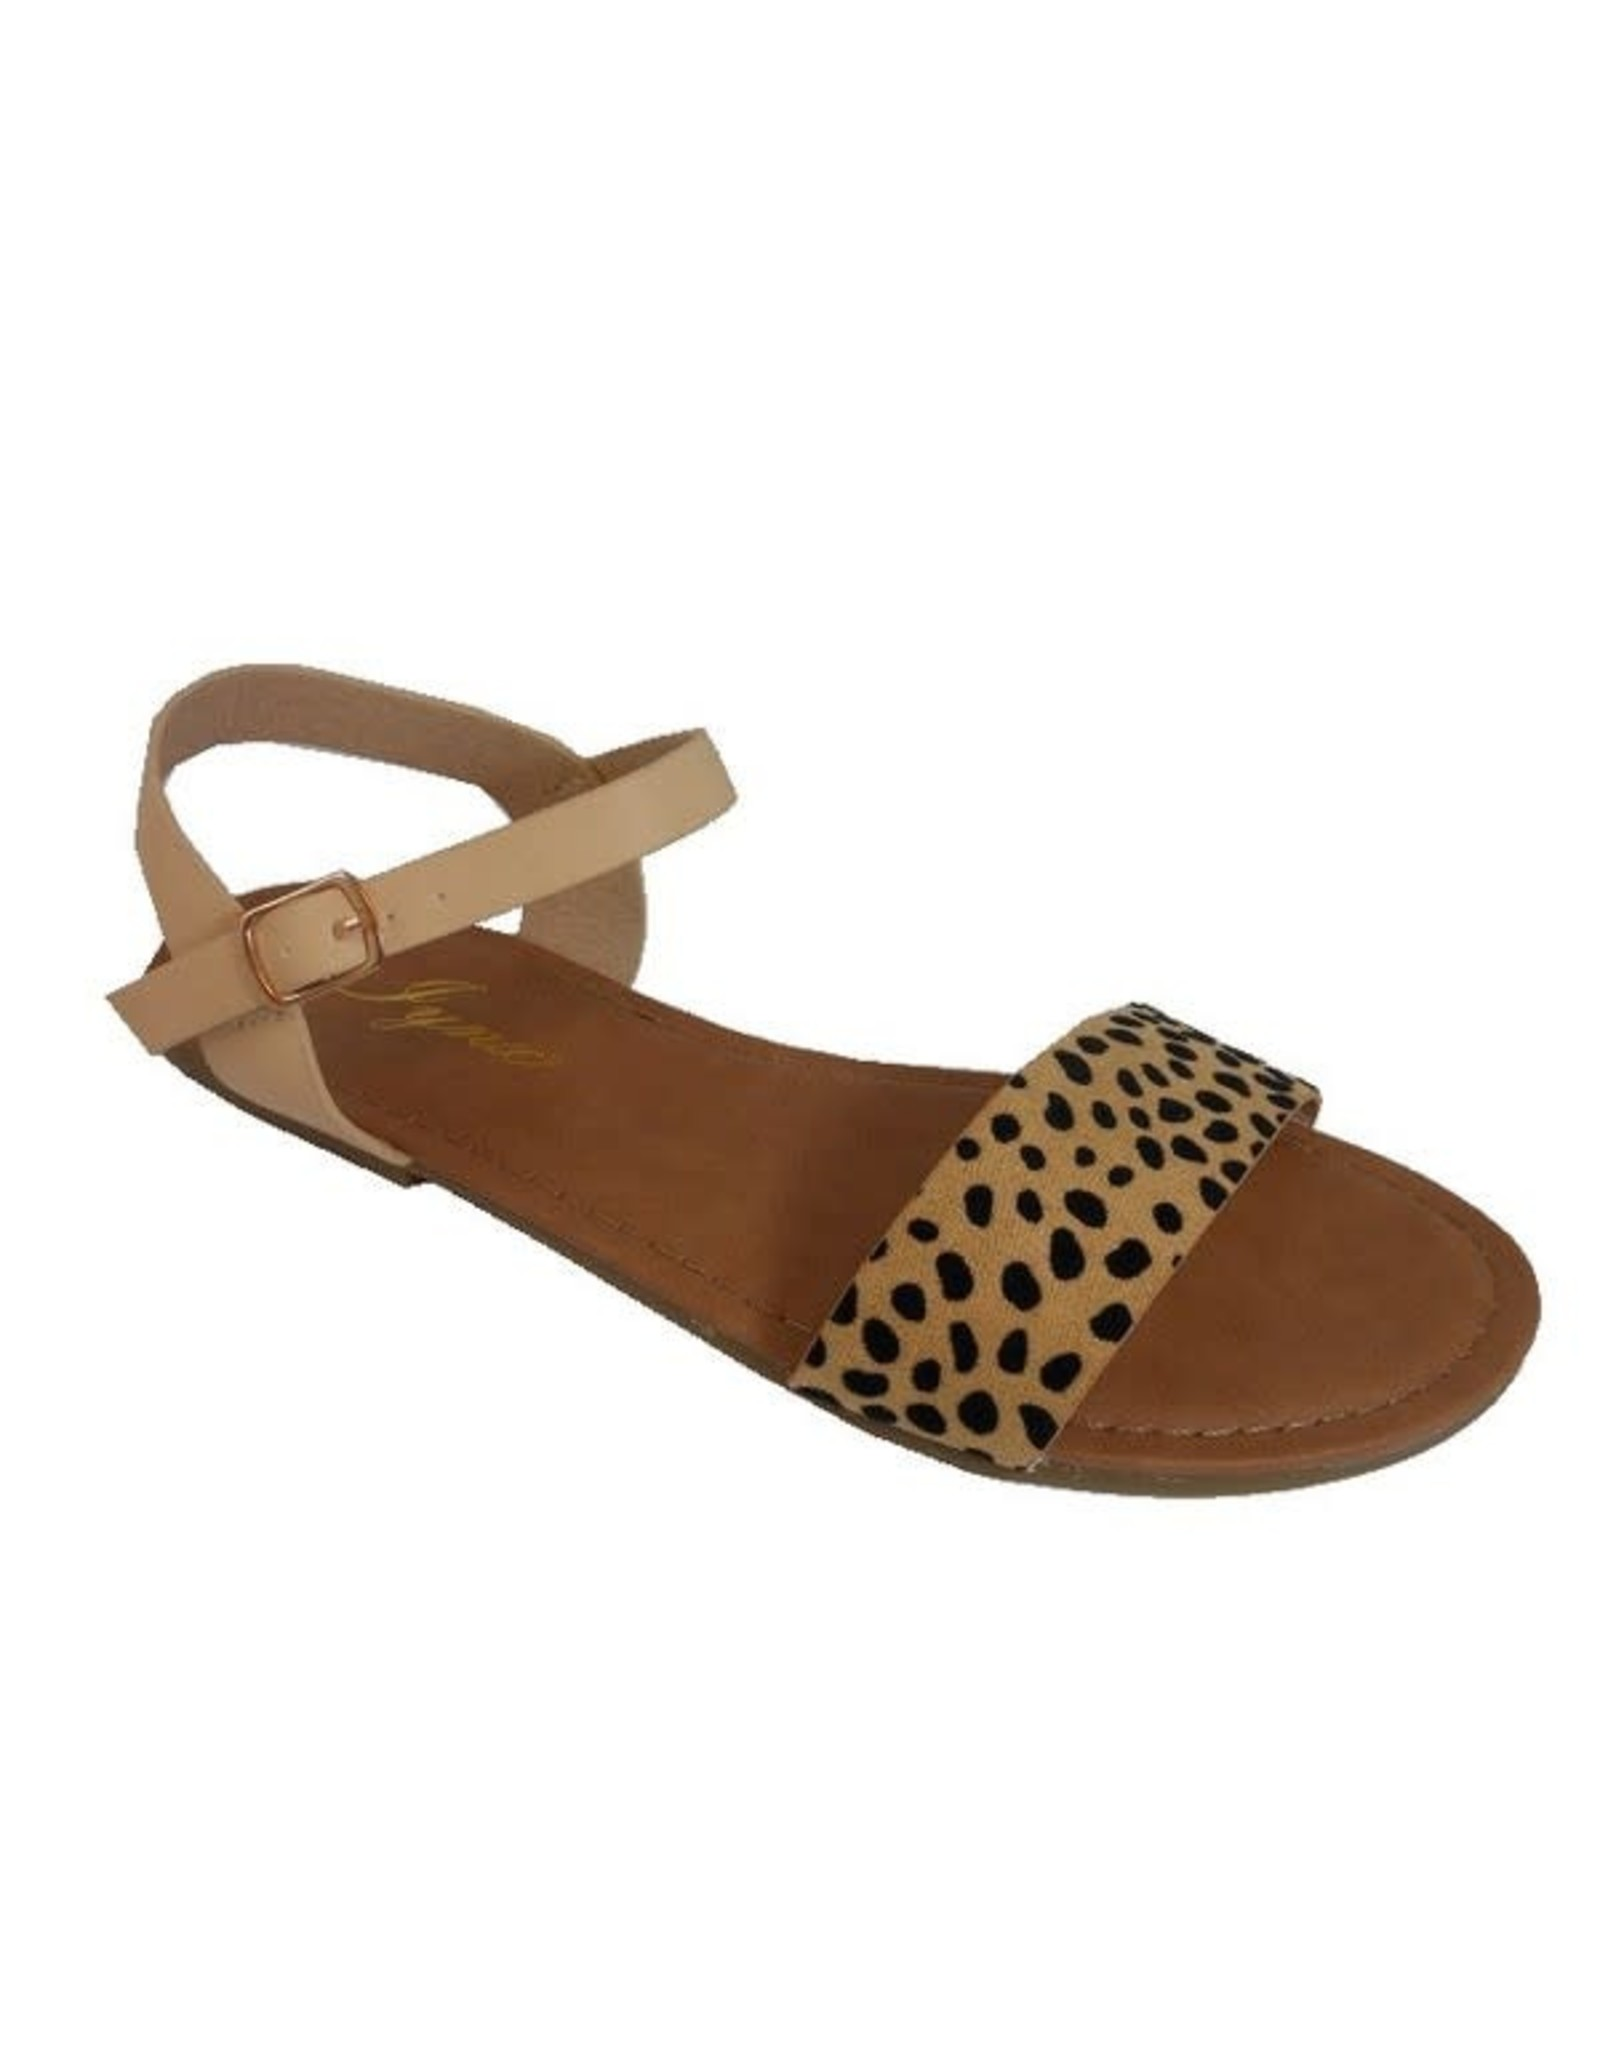 ANNA Leopard Sandals - The Ritzy Gypsy